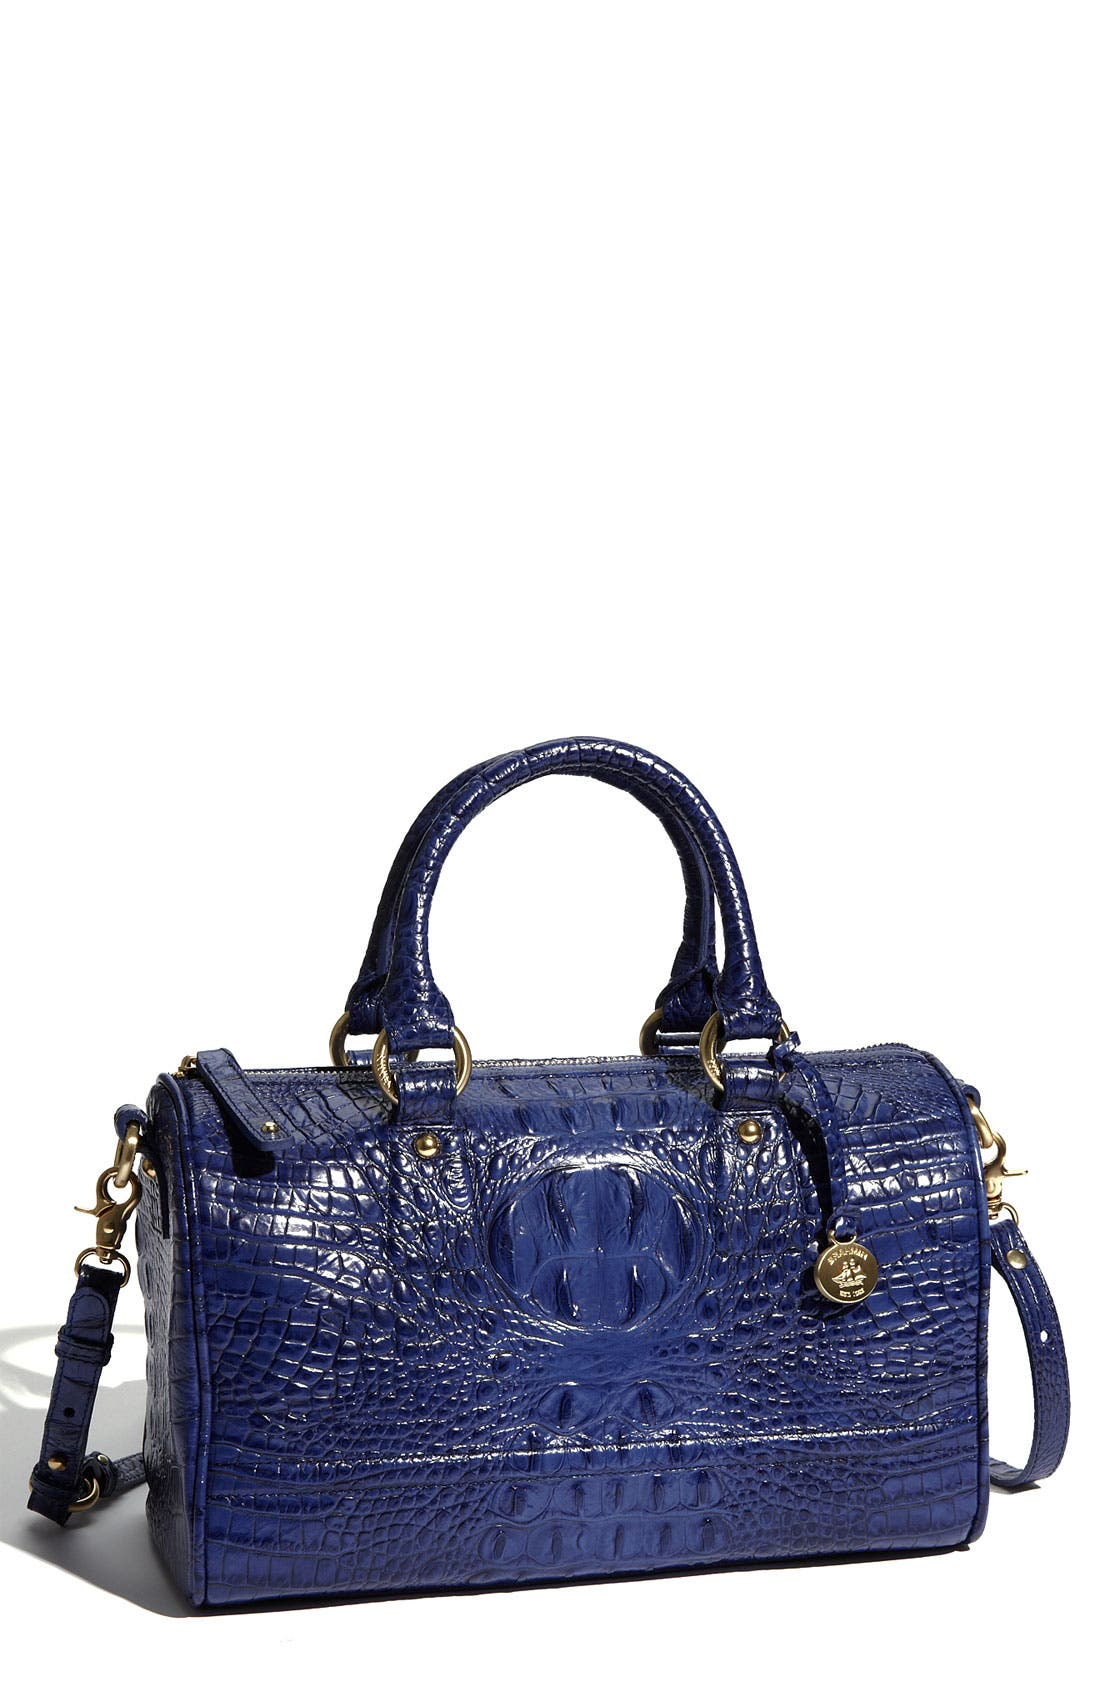 Main Image - Brahmin 'Sadie' Croc Embossed Leather Satchel